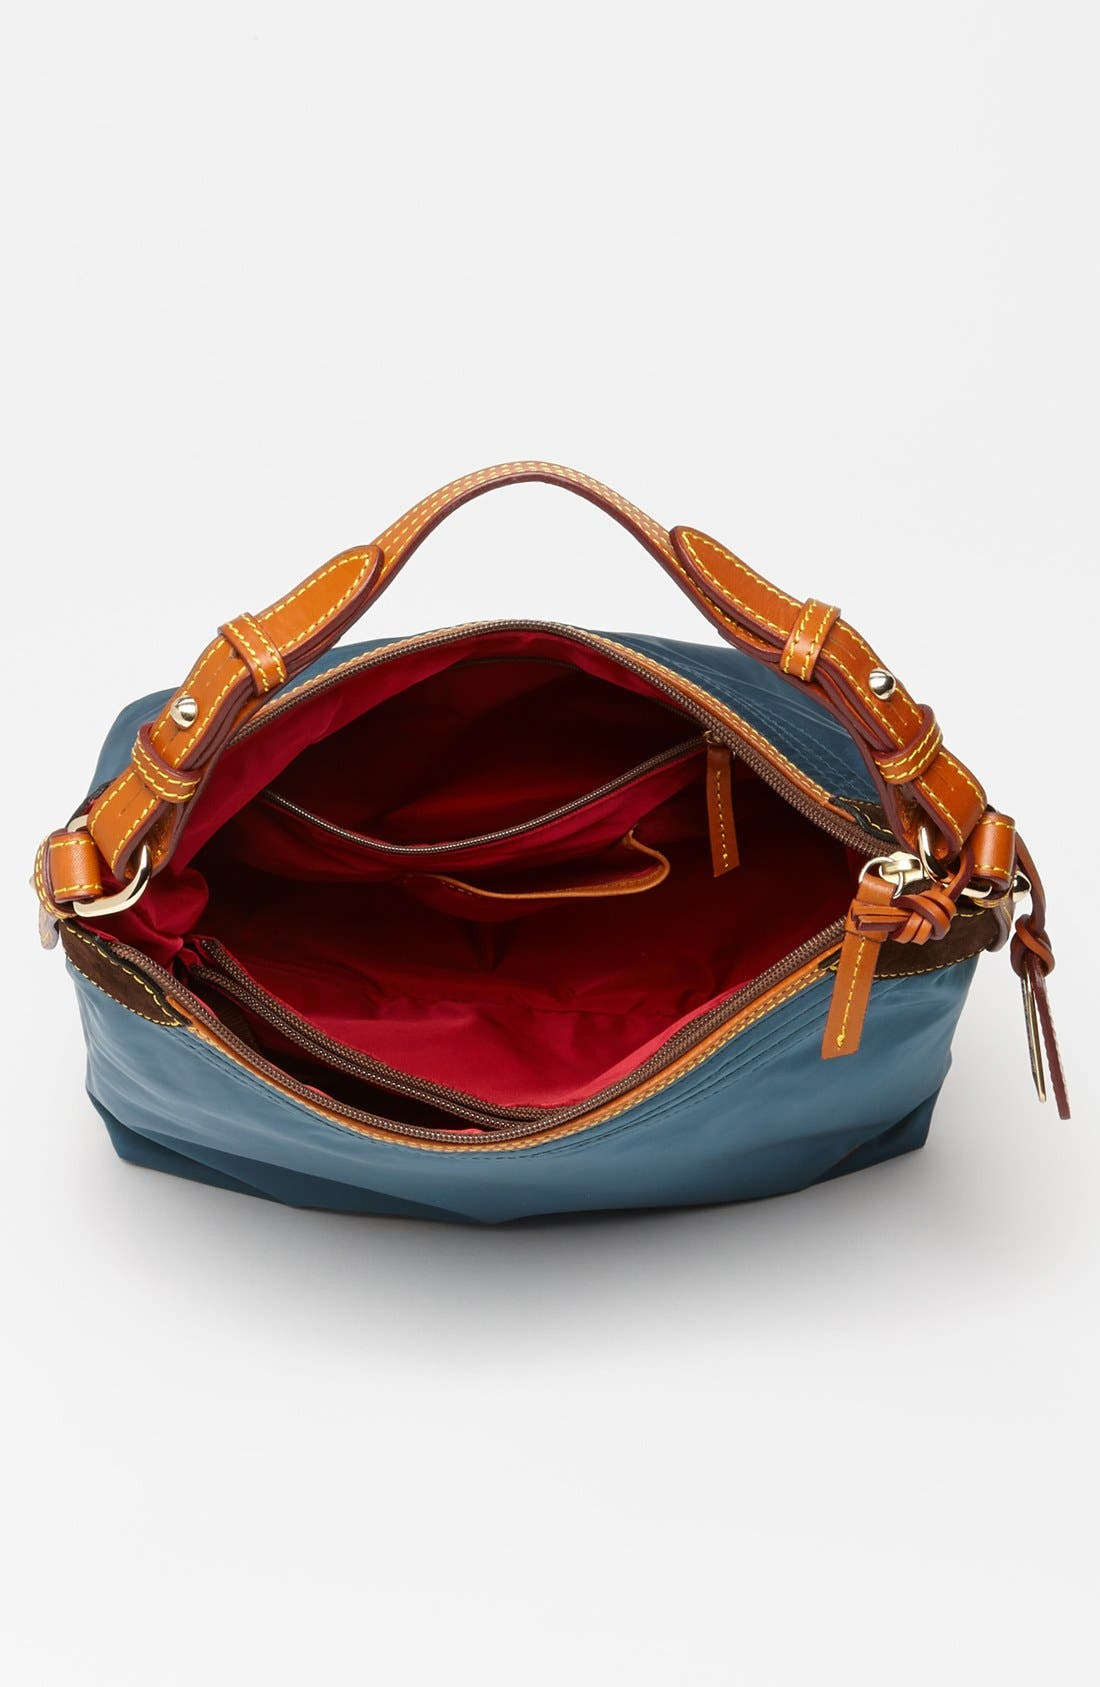 Alternate Image 4  - Dooney & Bourke 'Erica Sport Sac - Large' Nylon Hobo